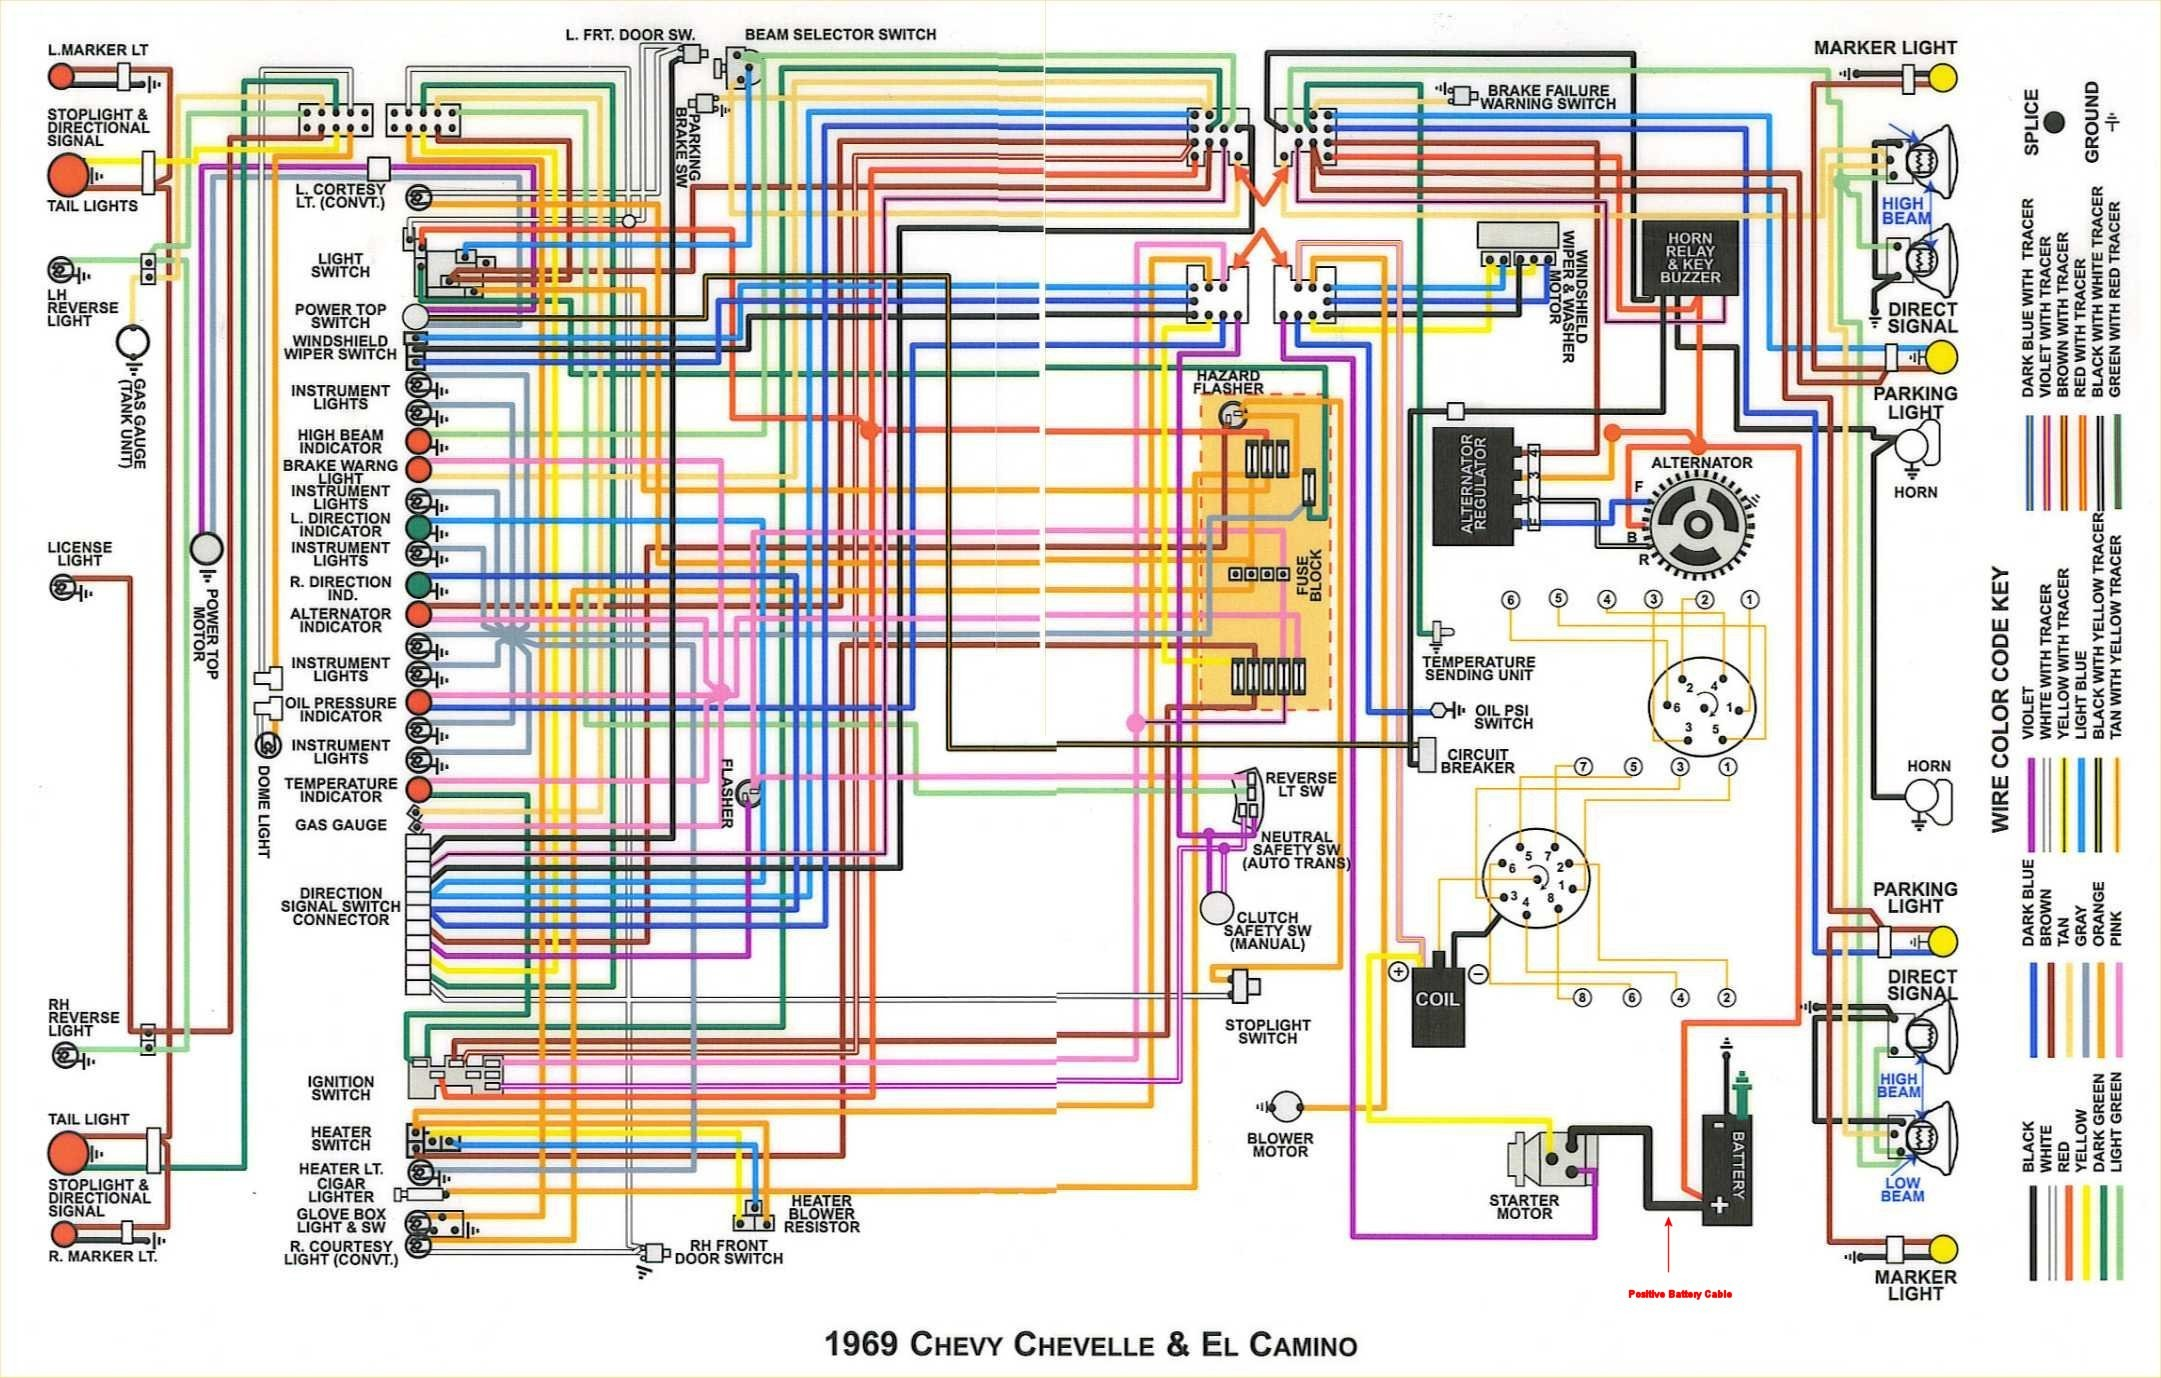 1970 gm radio wiring diagram - wiring diagrams button drink-hell -  drink-hell.lamorciola.it  drink-hell.lamorciola.it